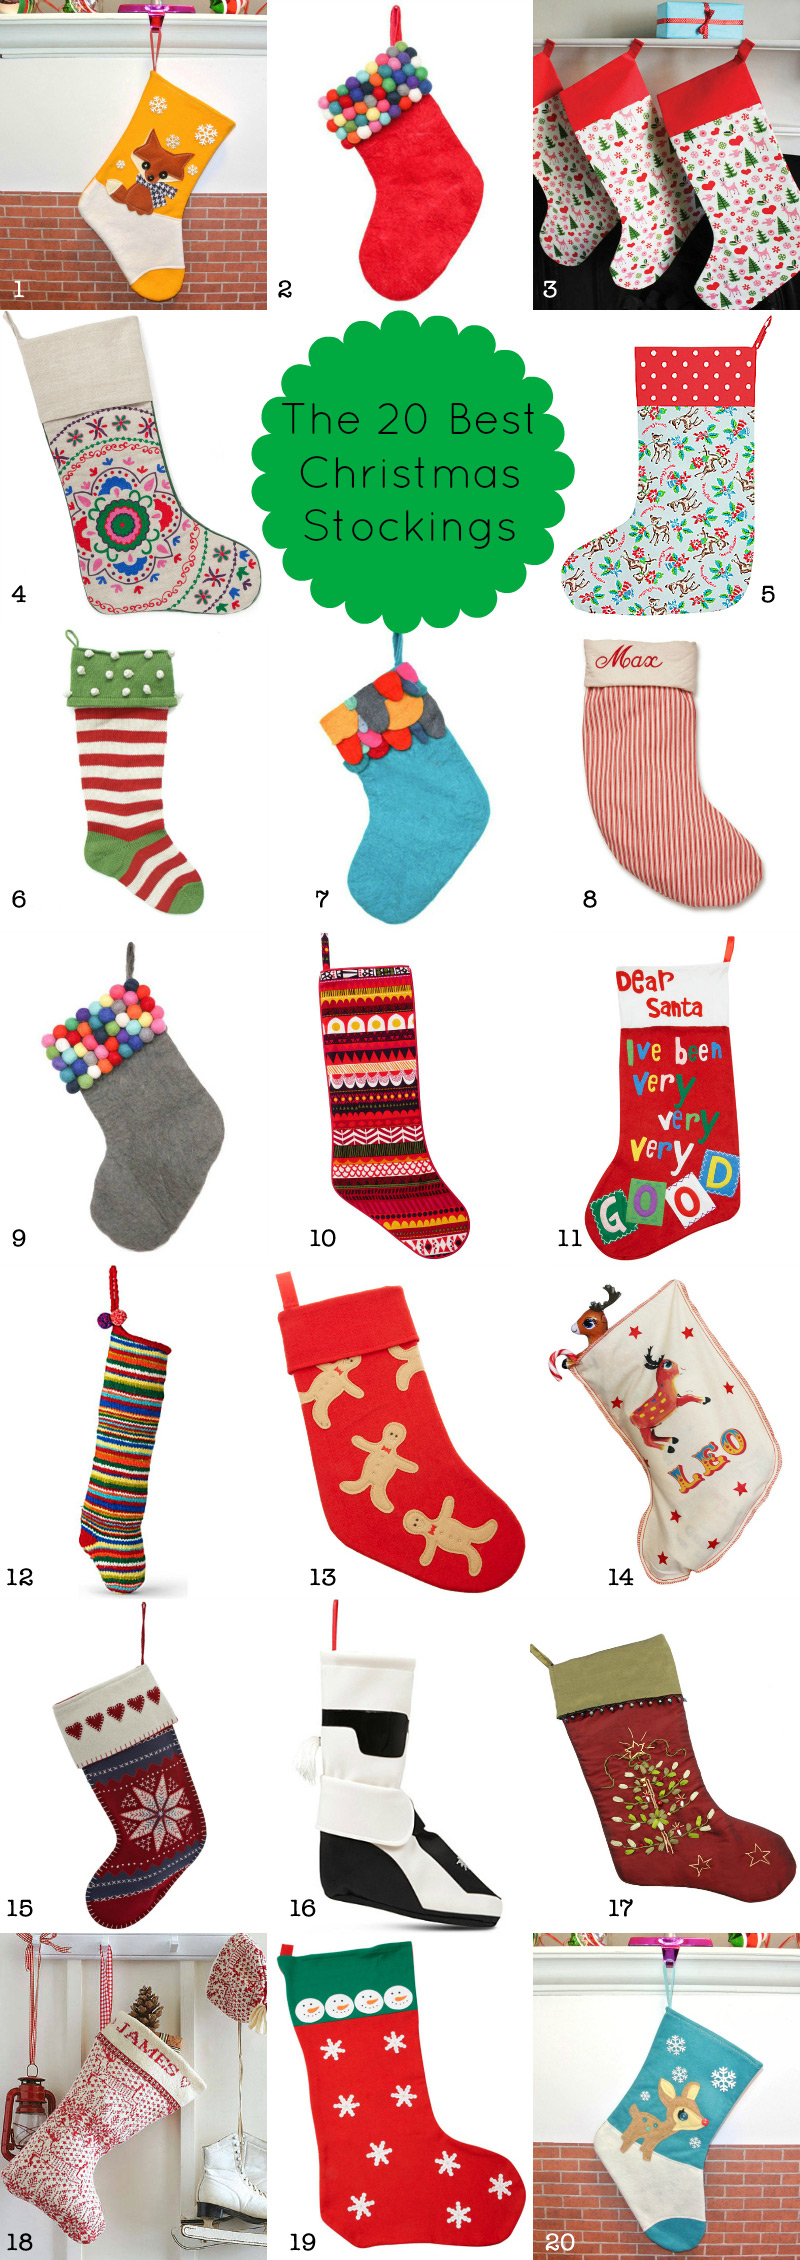 20 Best Stockings 2012 via we-are-scout.com